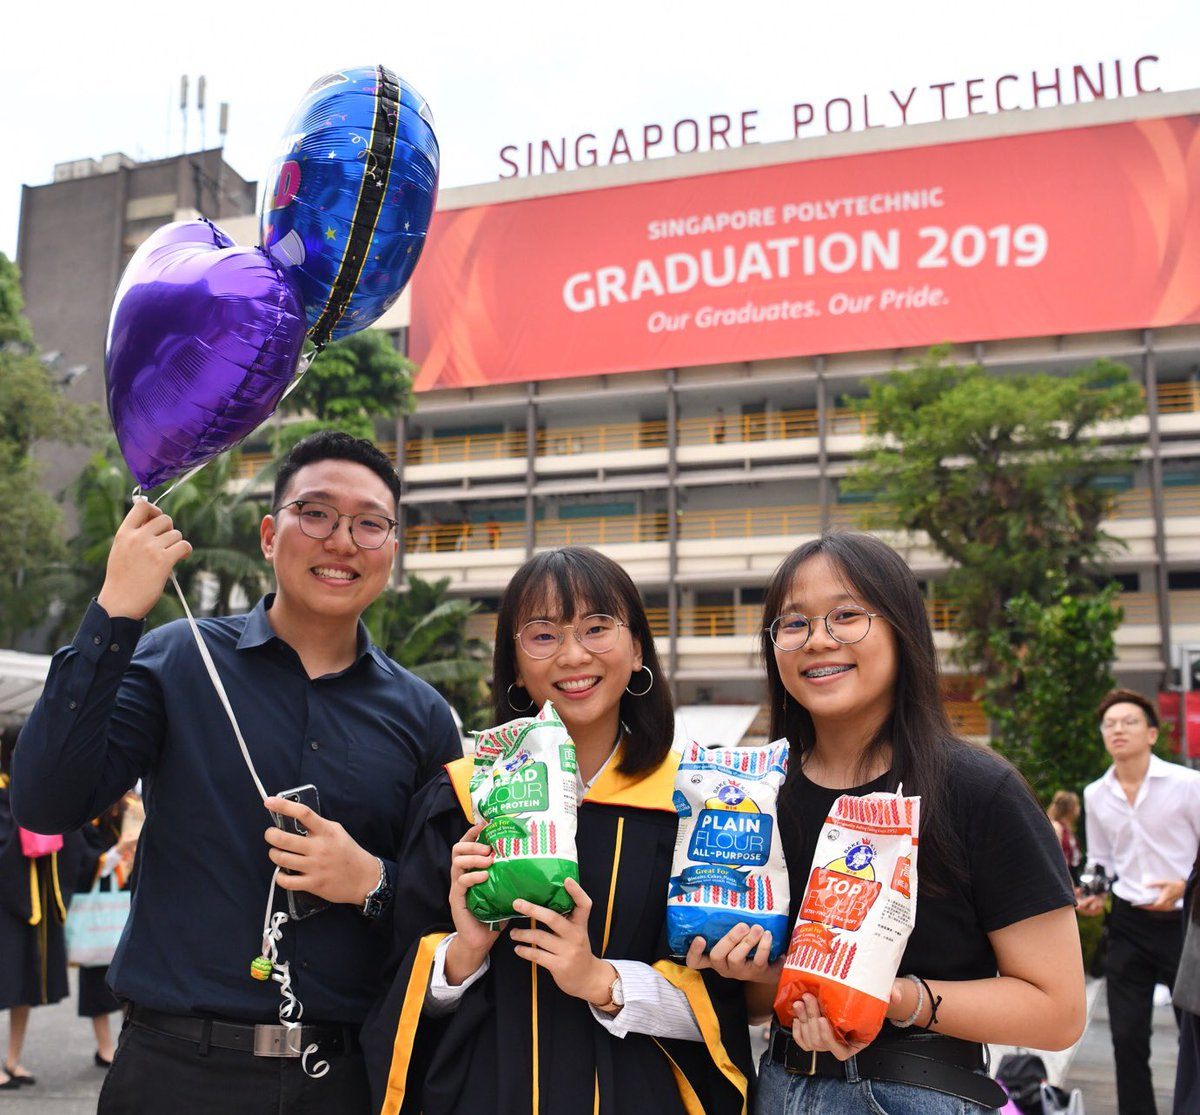 We brought you flo-urs ! Congrats to all our Chemical & Life Sciences graduates! #spgrad19 #speye #singaporepolypic.twitter.com/4OlGXODYhD